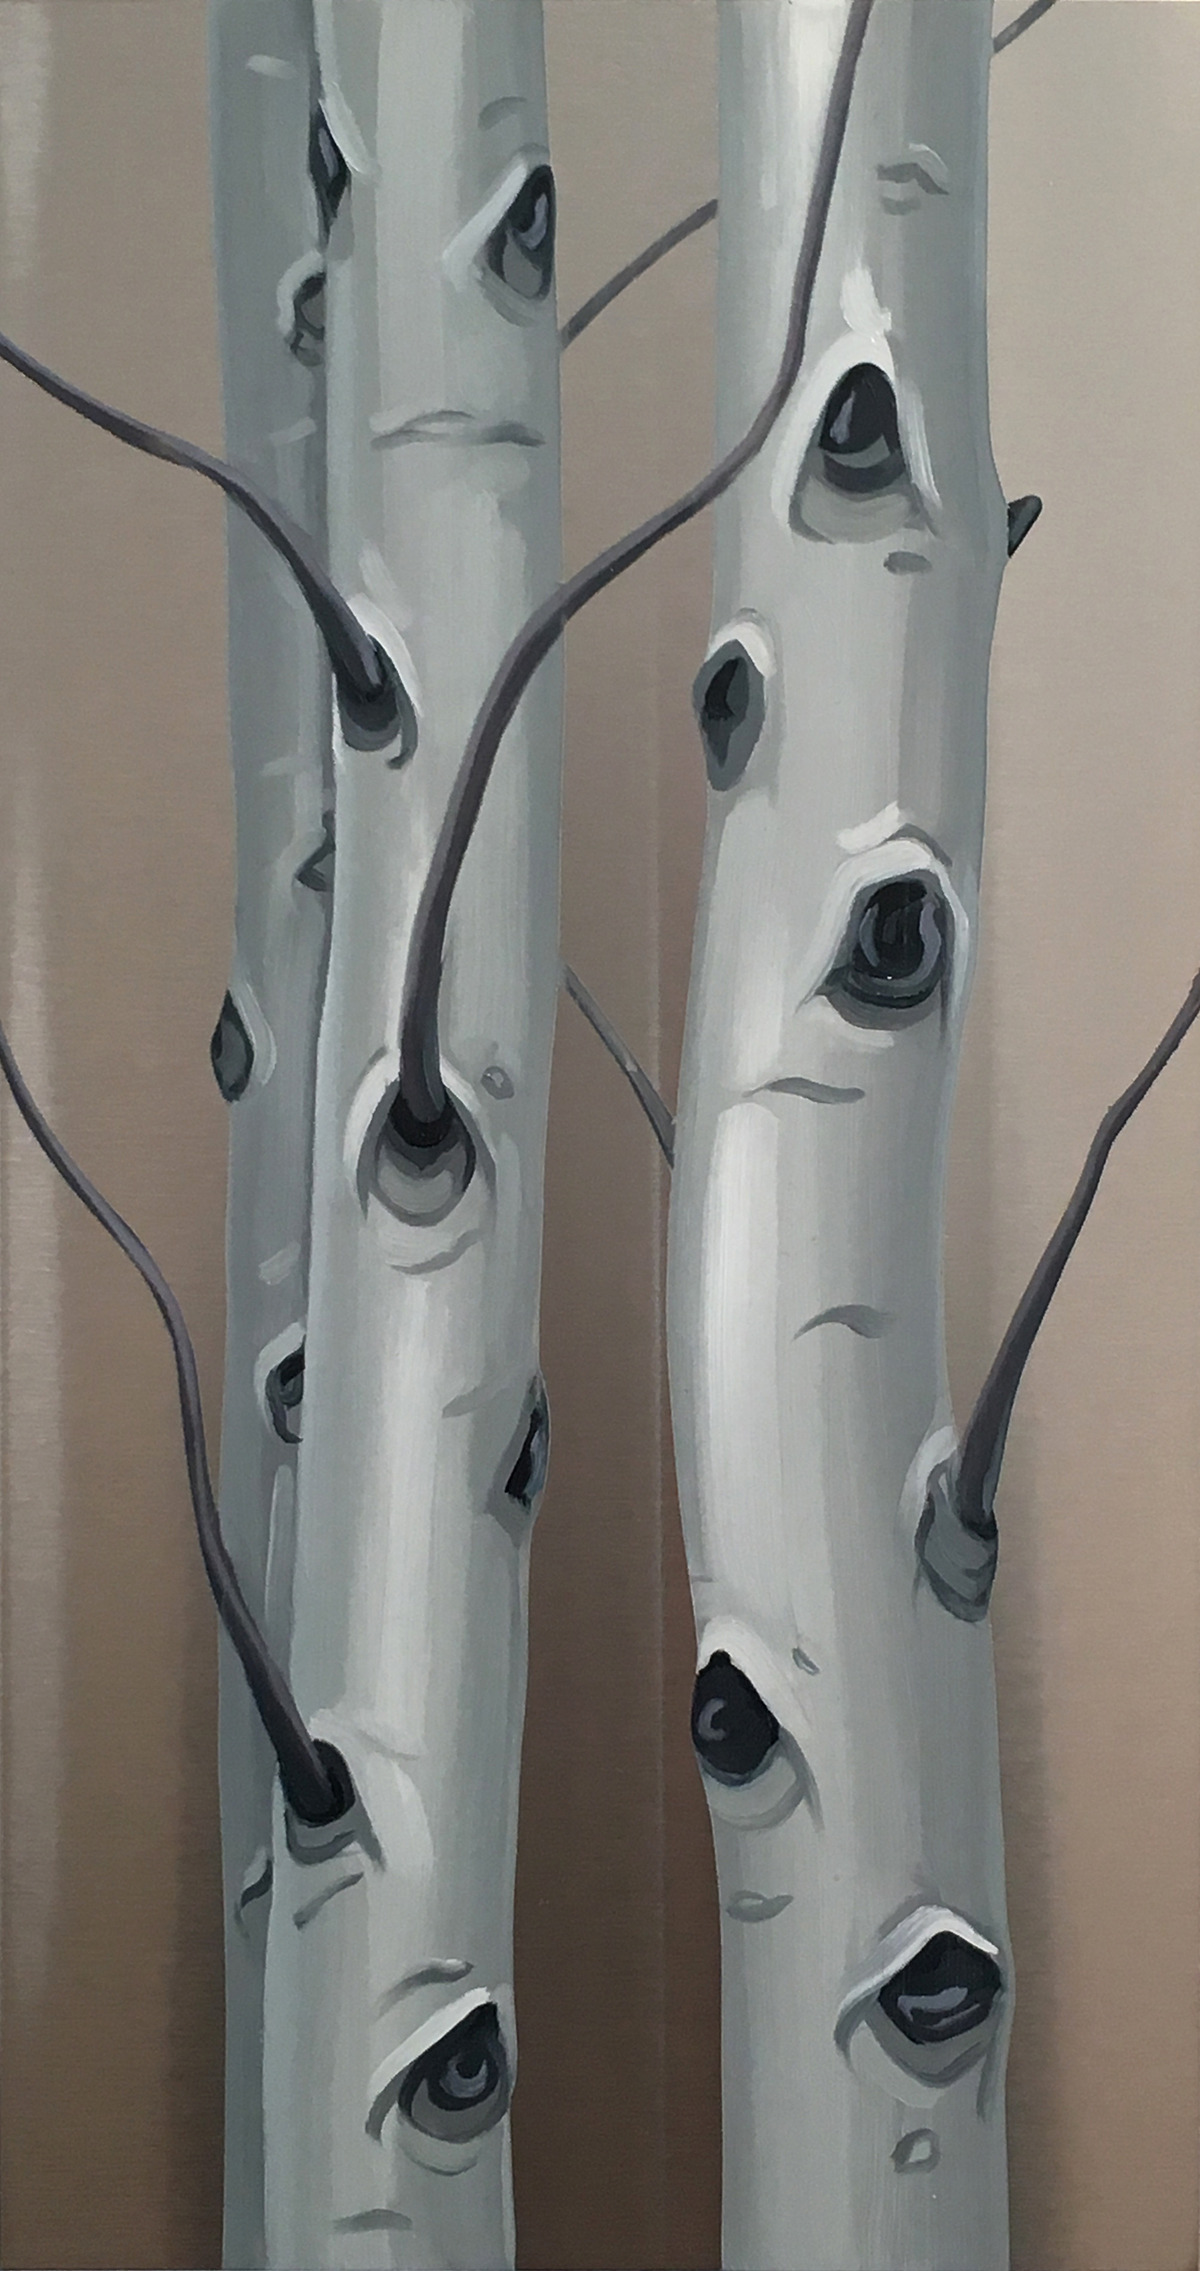 The Gathering . Oil on stainless steel, 15in x 8in. Available at Evergreen Fine Art